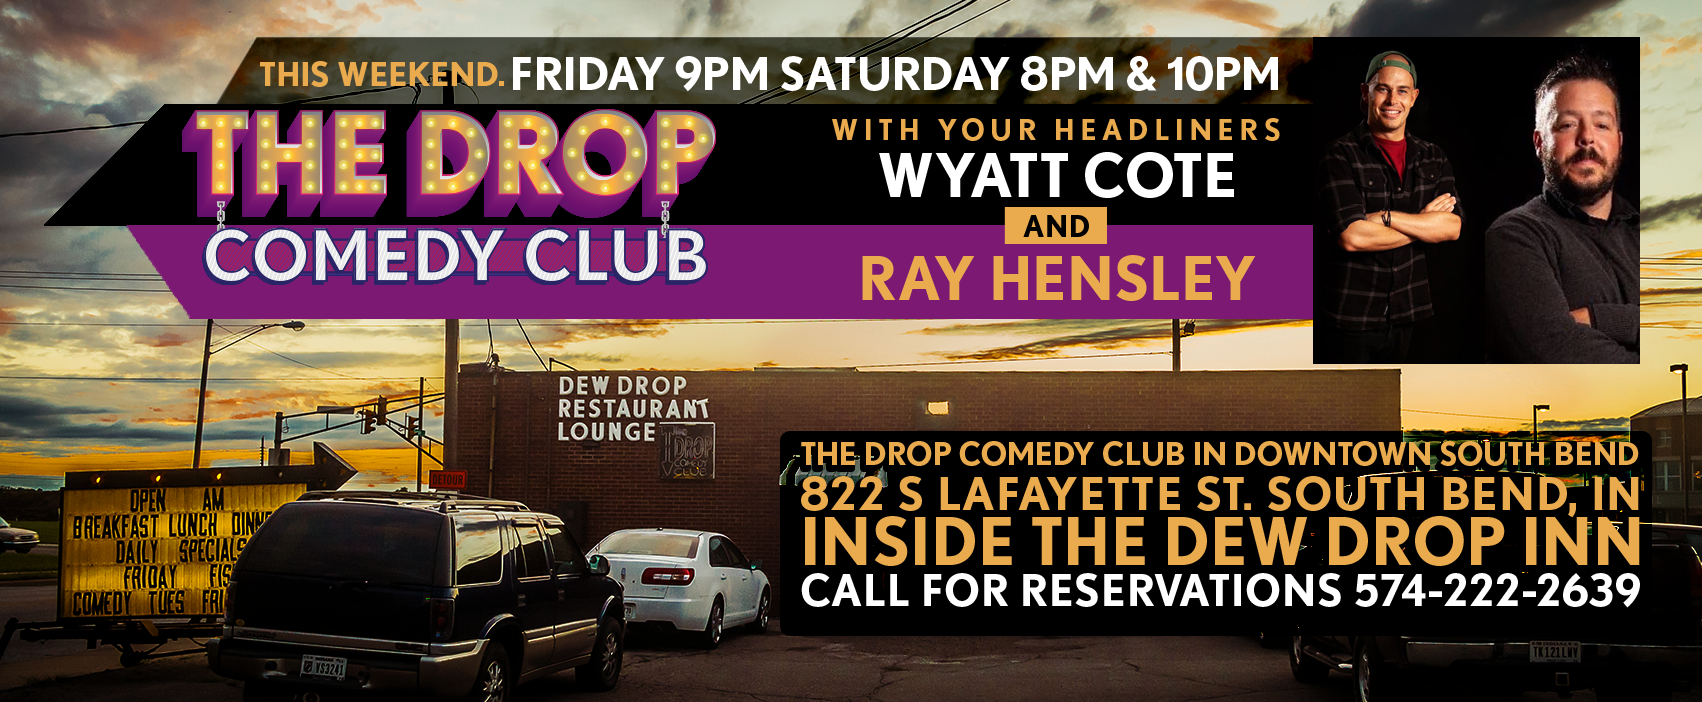 South Bend Restaurants Open Christmas Day 2020 The Drop Comedy Club   The Drop Comedy Club